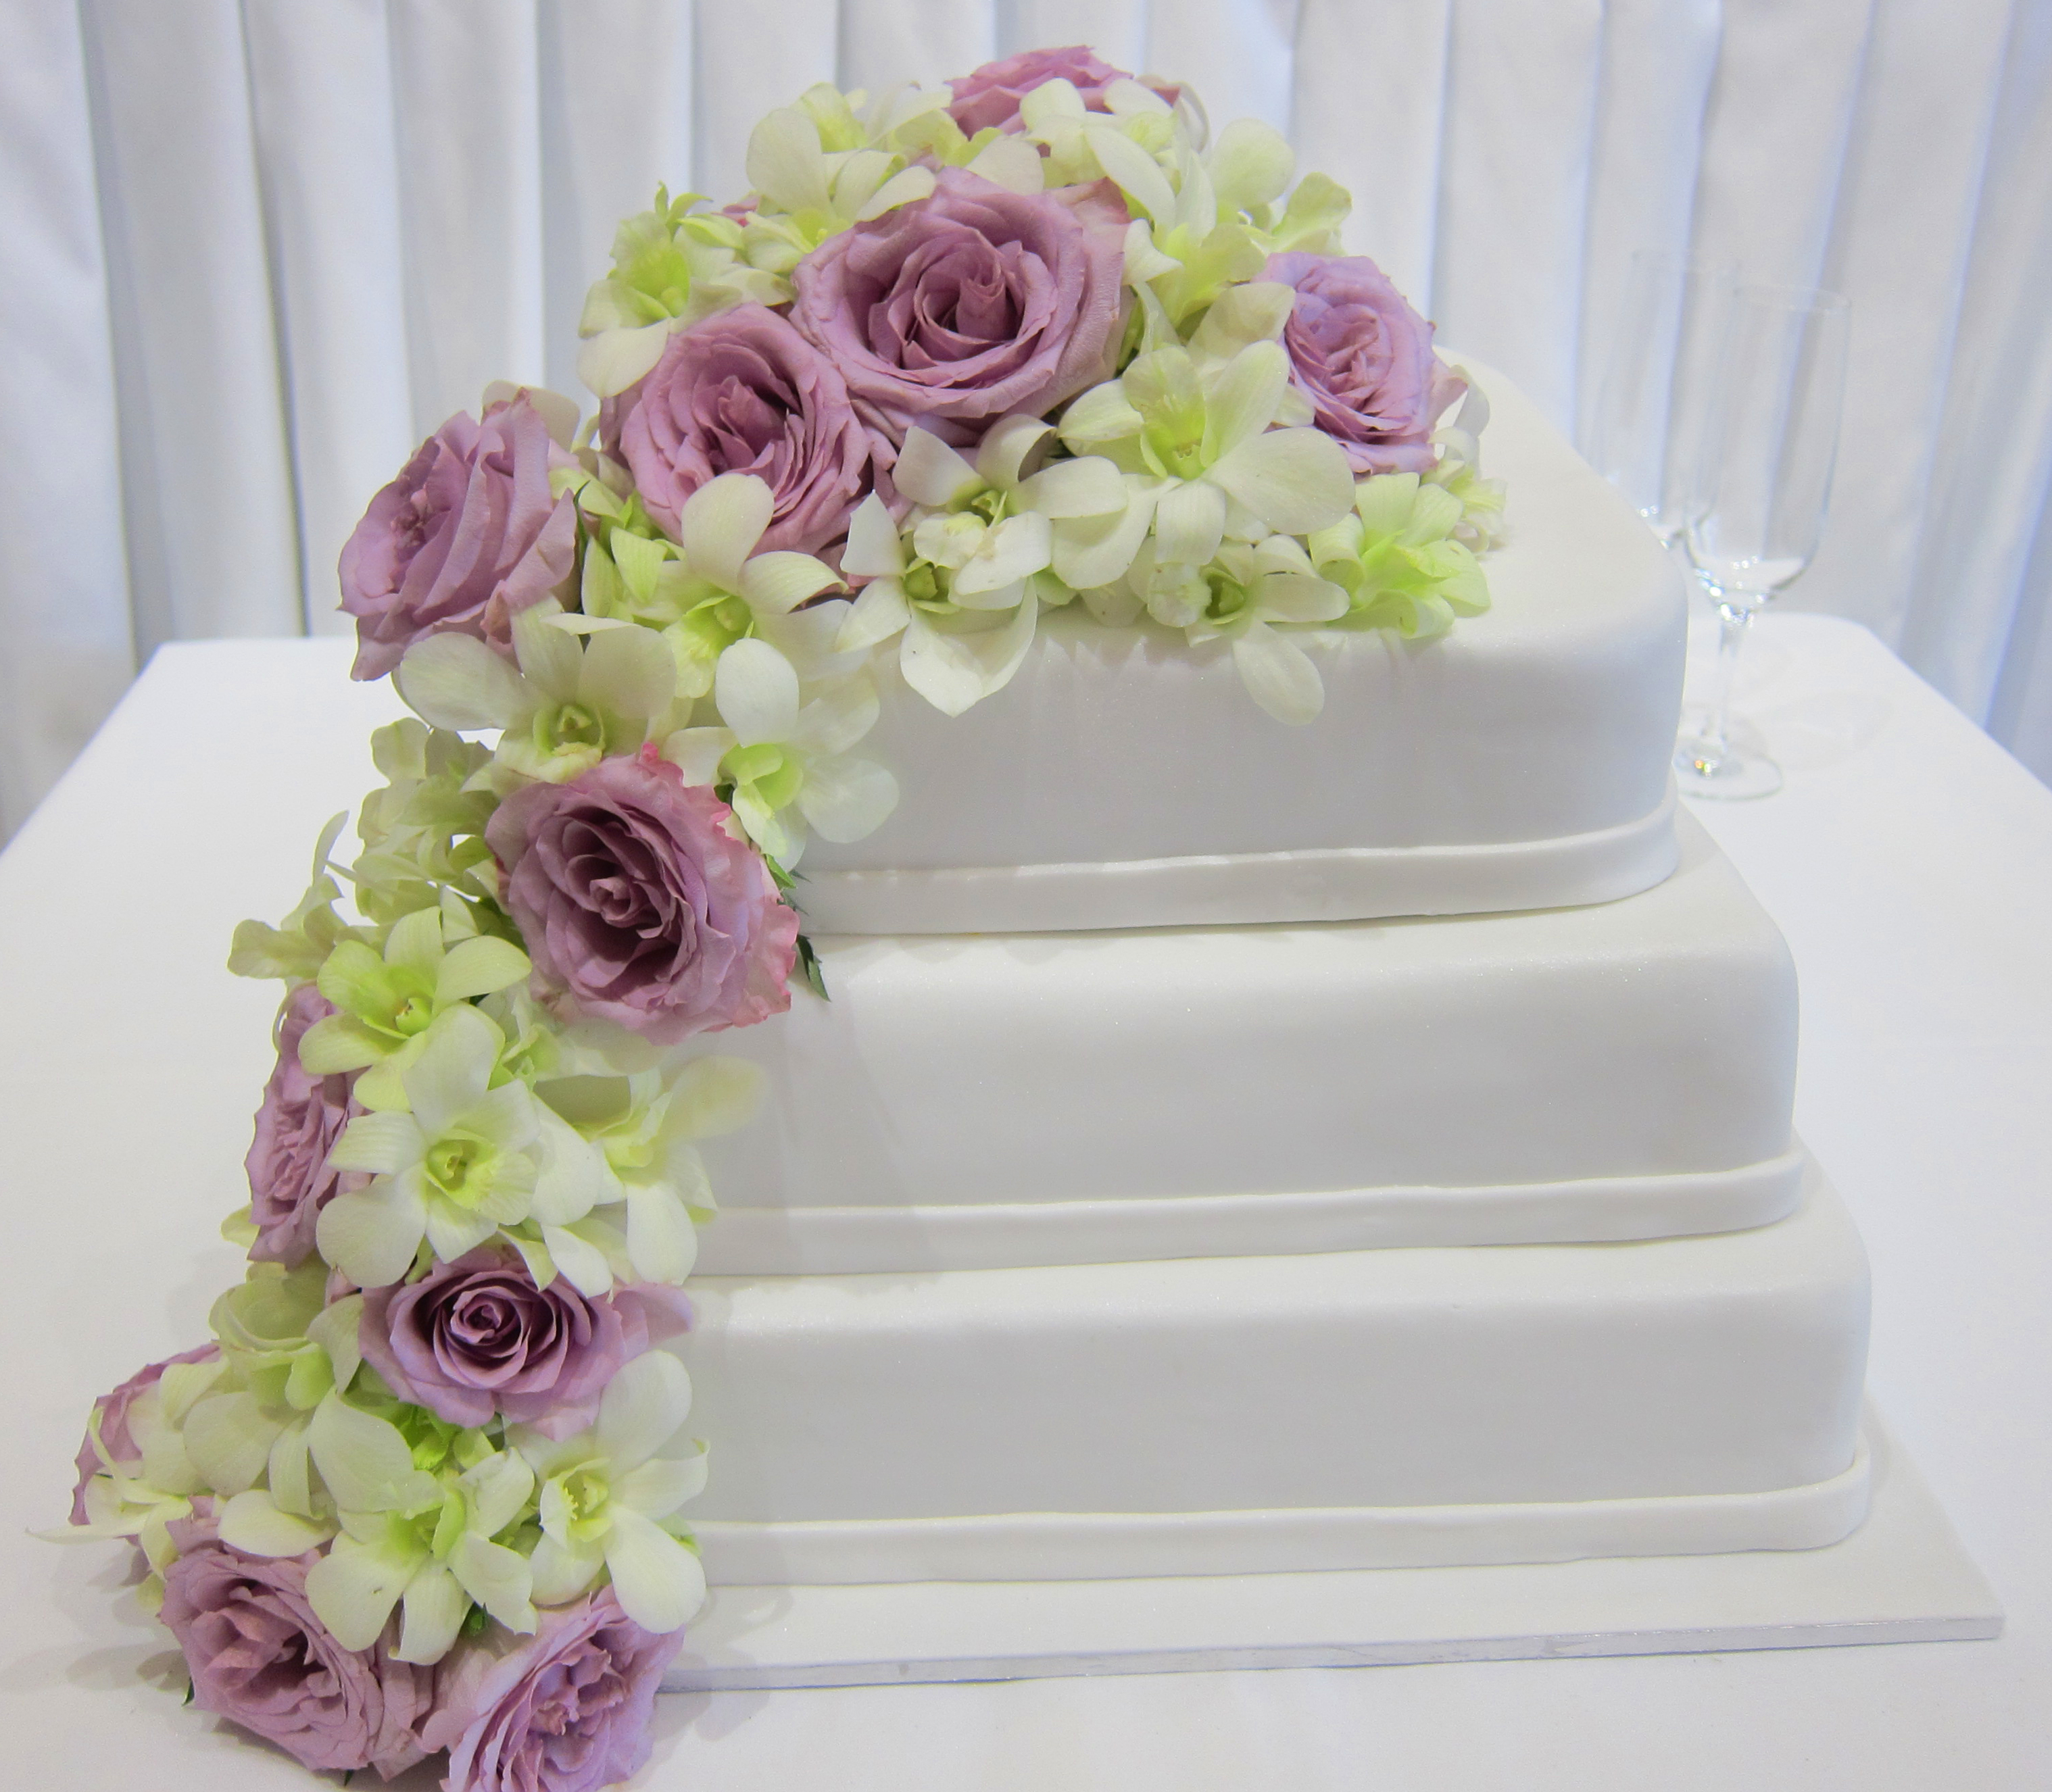 fresh flowers on wedding cakes pictures fresh flower wedding cake 14482